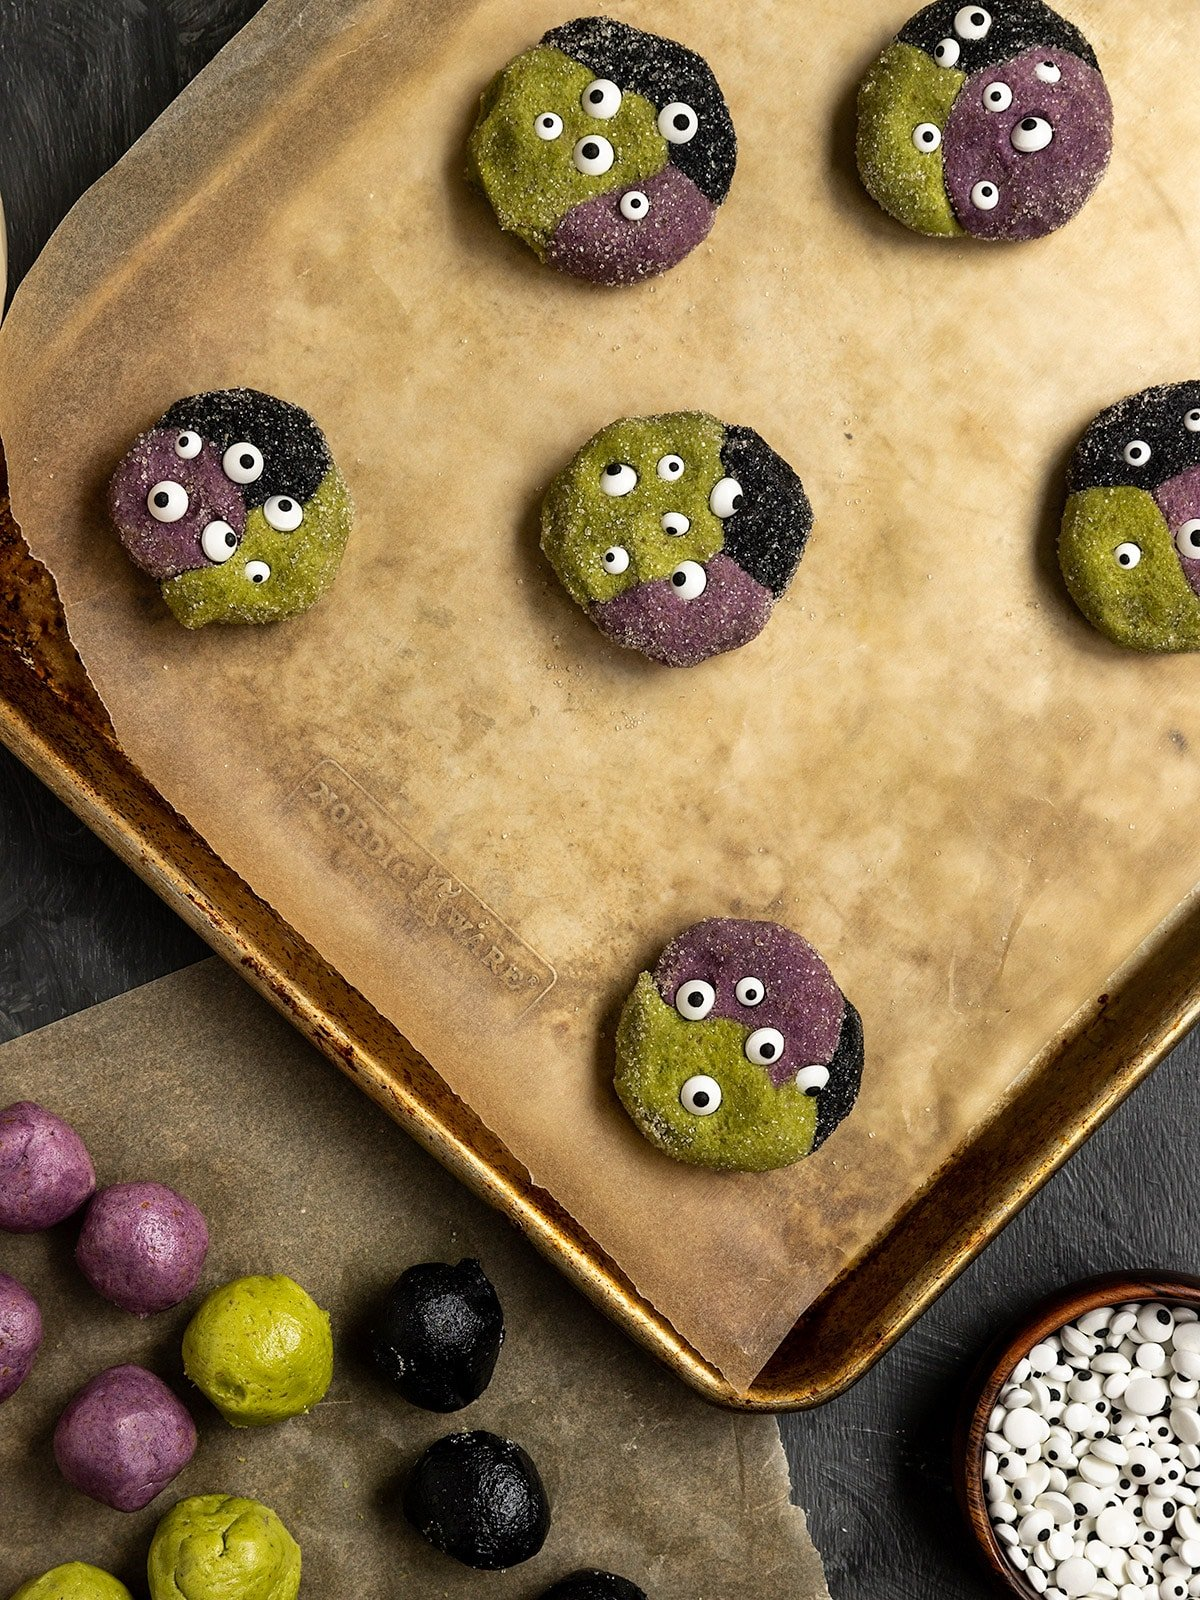 a tray of green, purple, and black cookie dough balls rolled in sugar with sprinkle eyes before baking